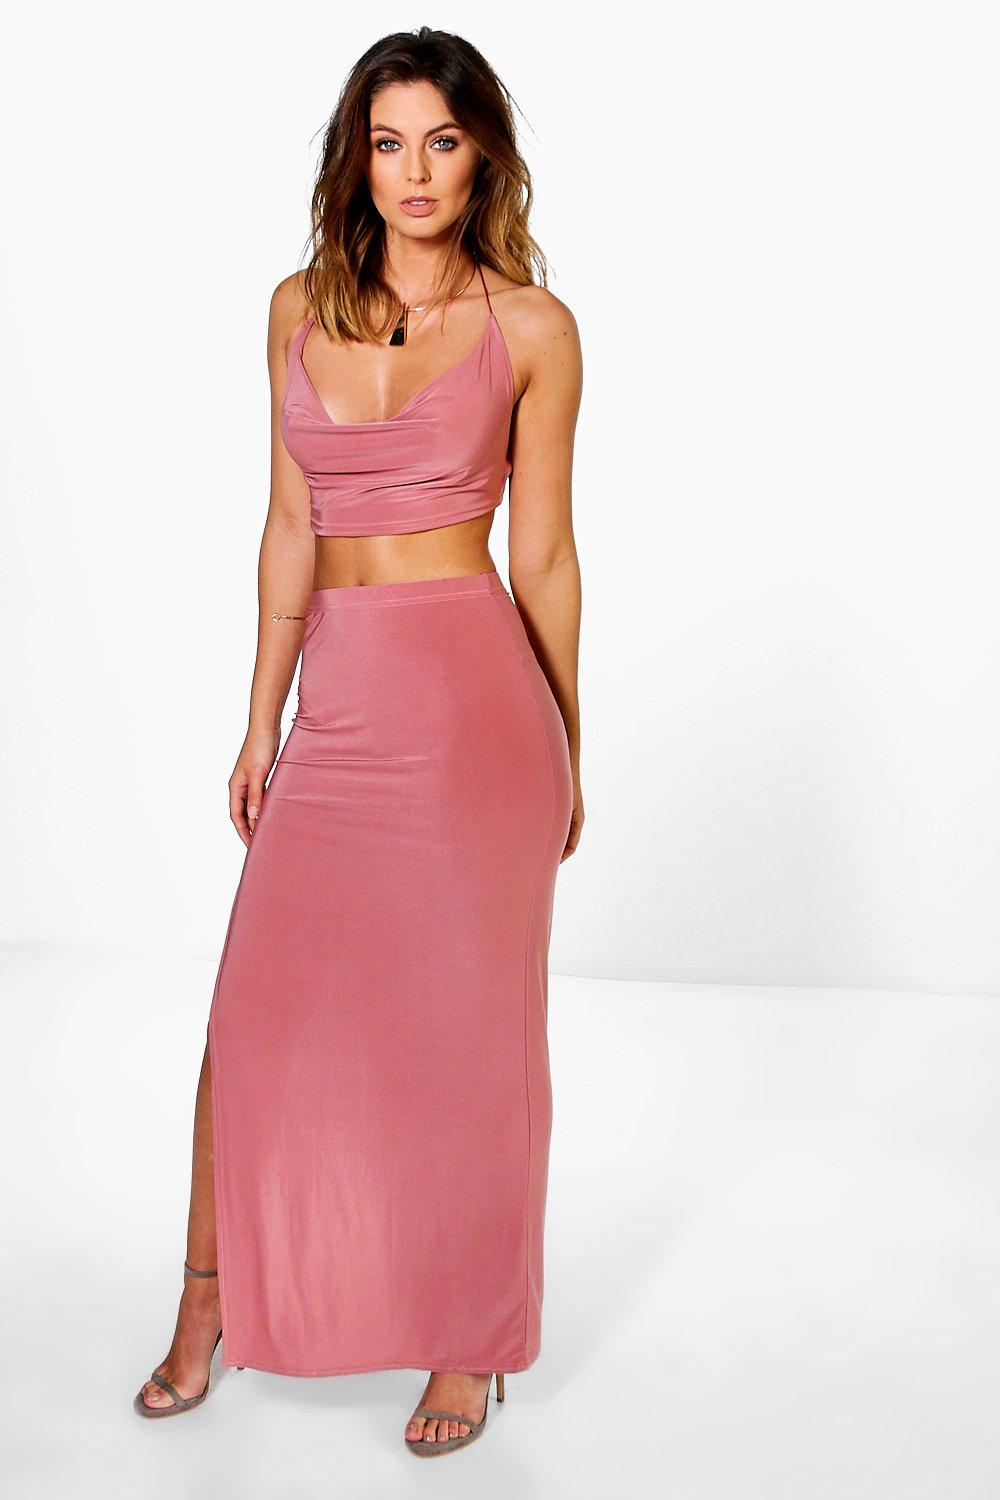 Nina Slinky Cowl Tie Top And Maxi Skirt Co-Ord